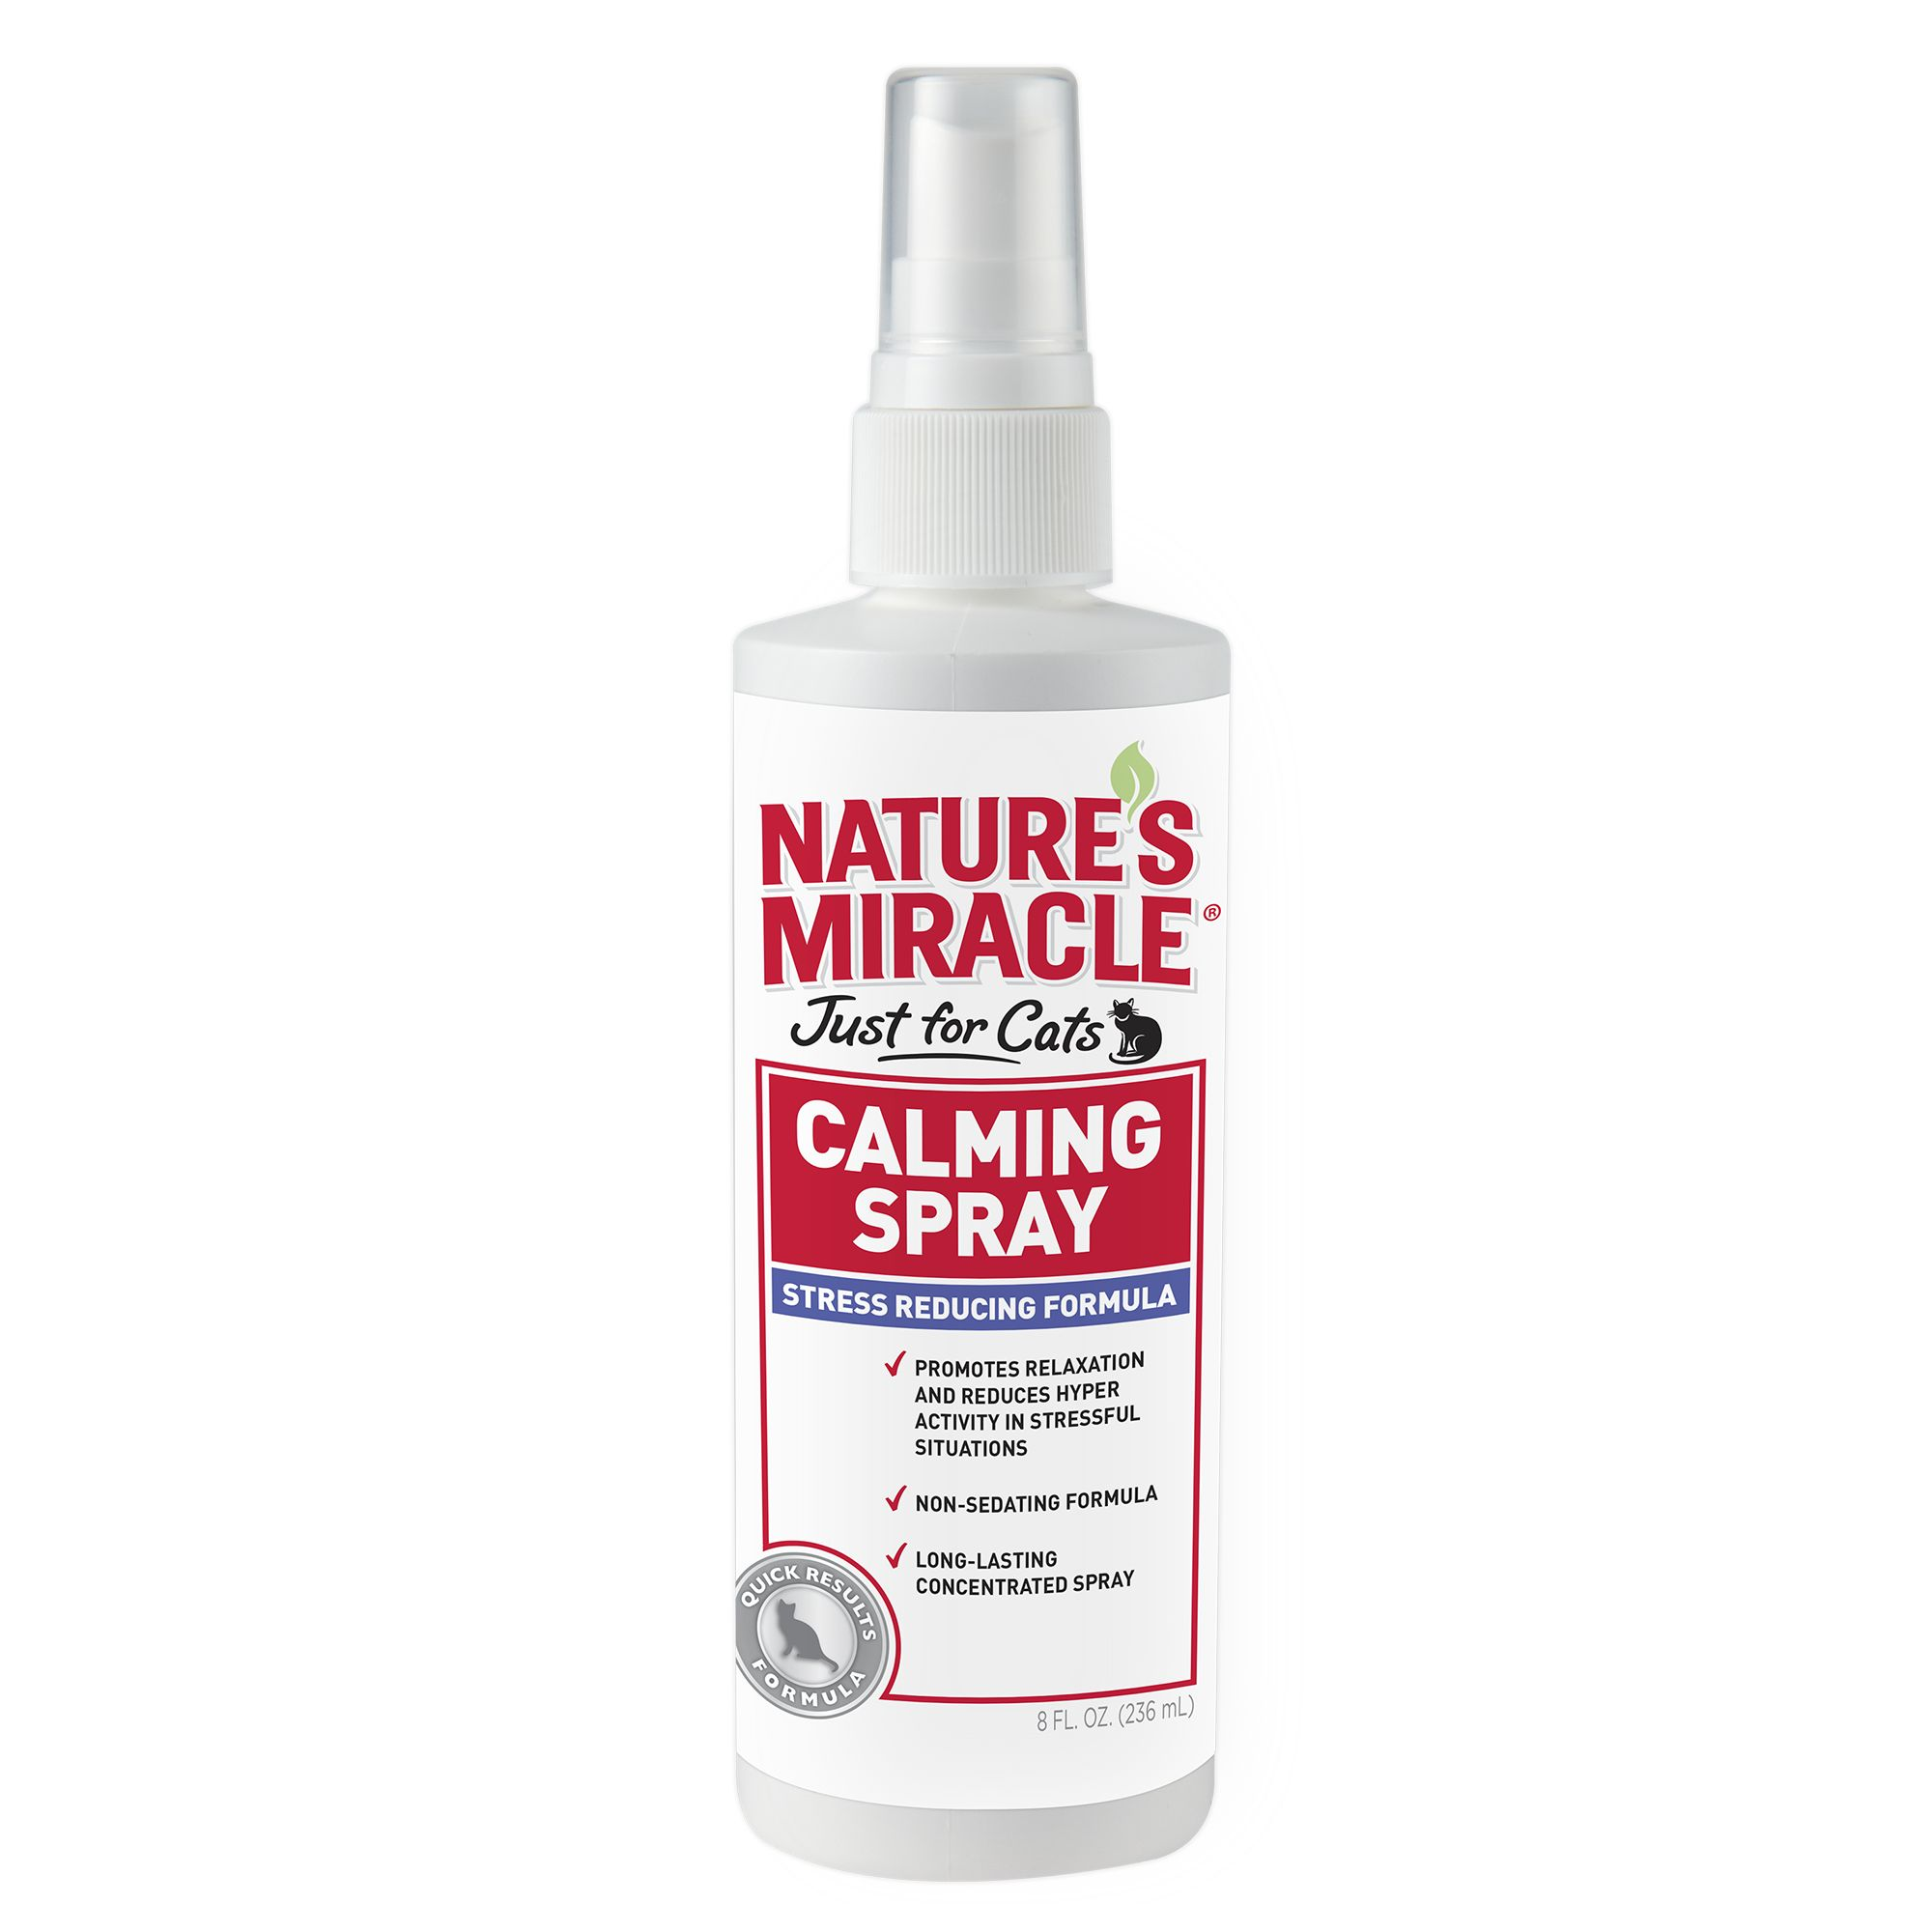 Natures Miracle Just For Cats Calming Spray